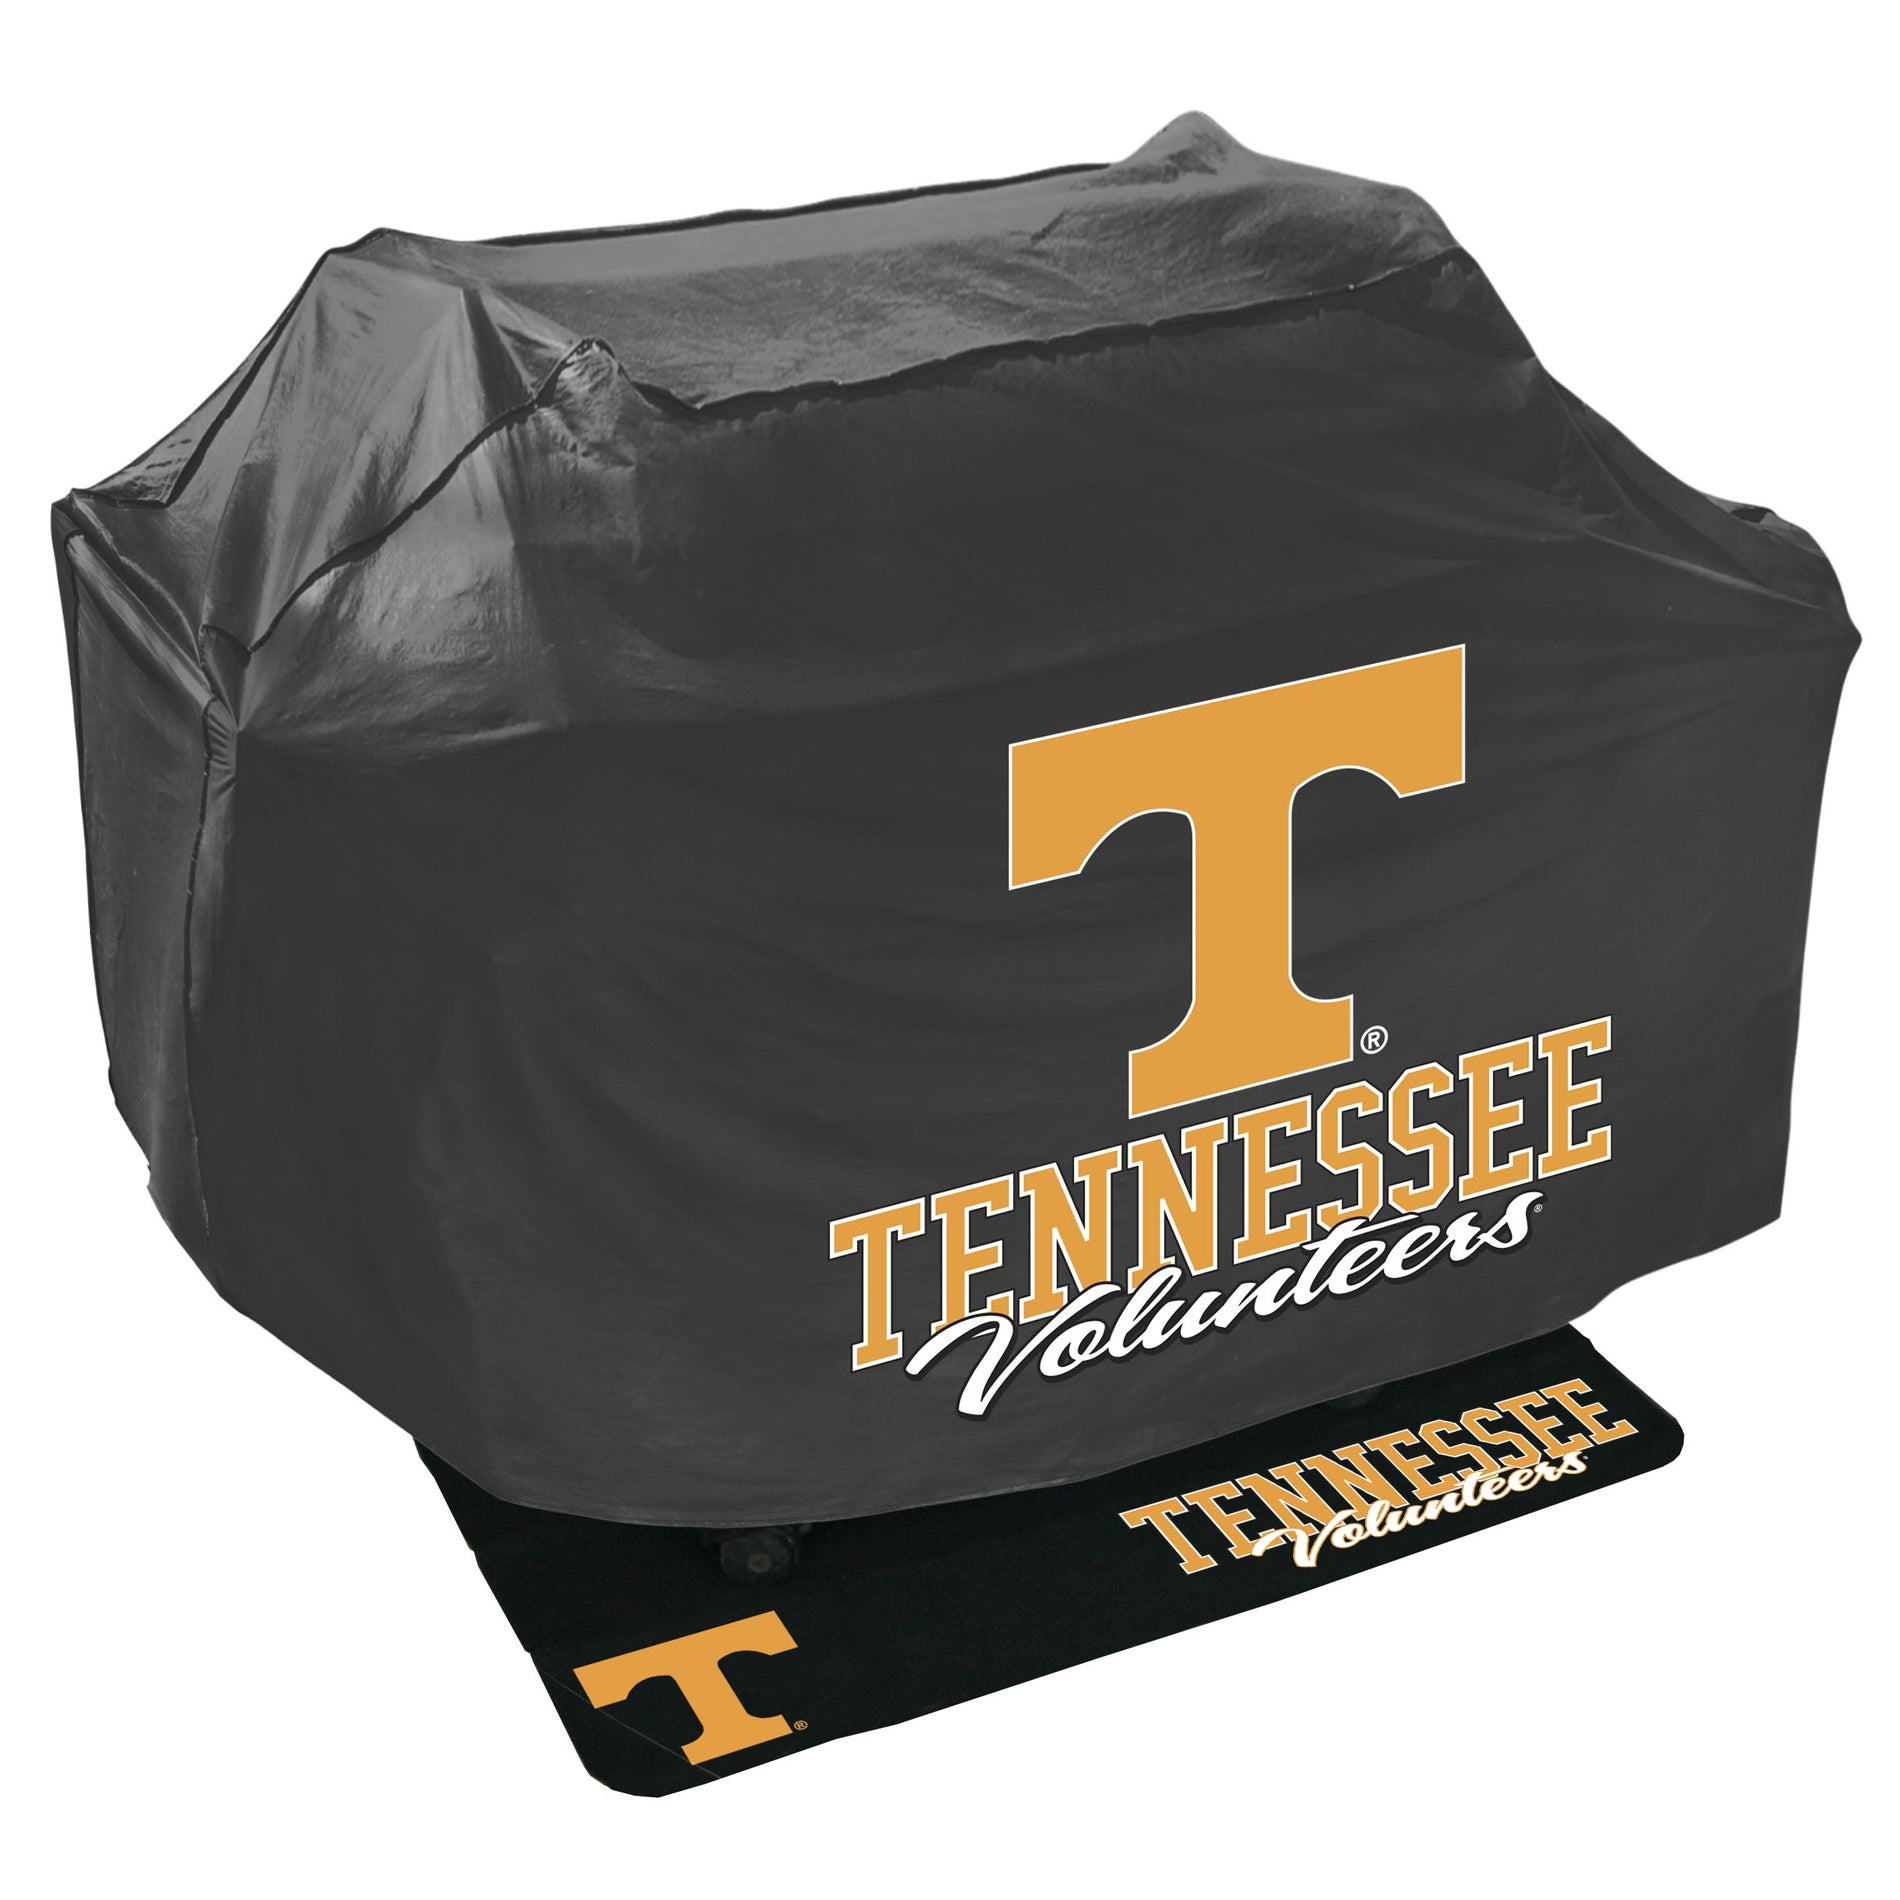 Tenessee Volunteers College-themed Grill Cover and Mat Protection Set